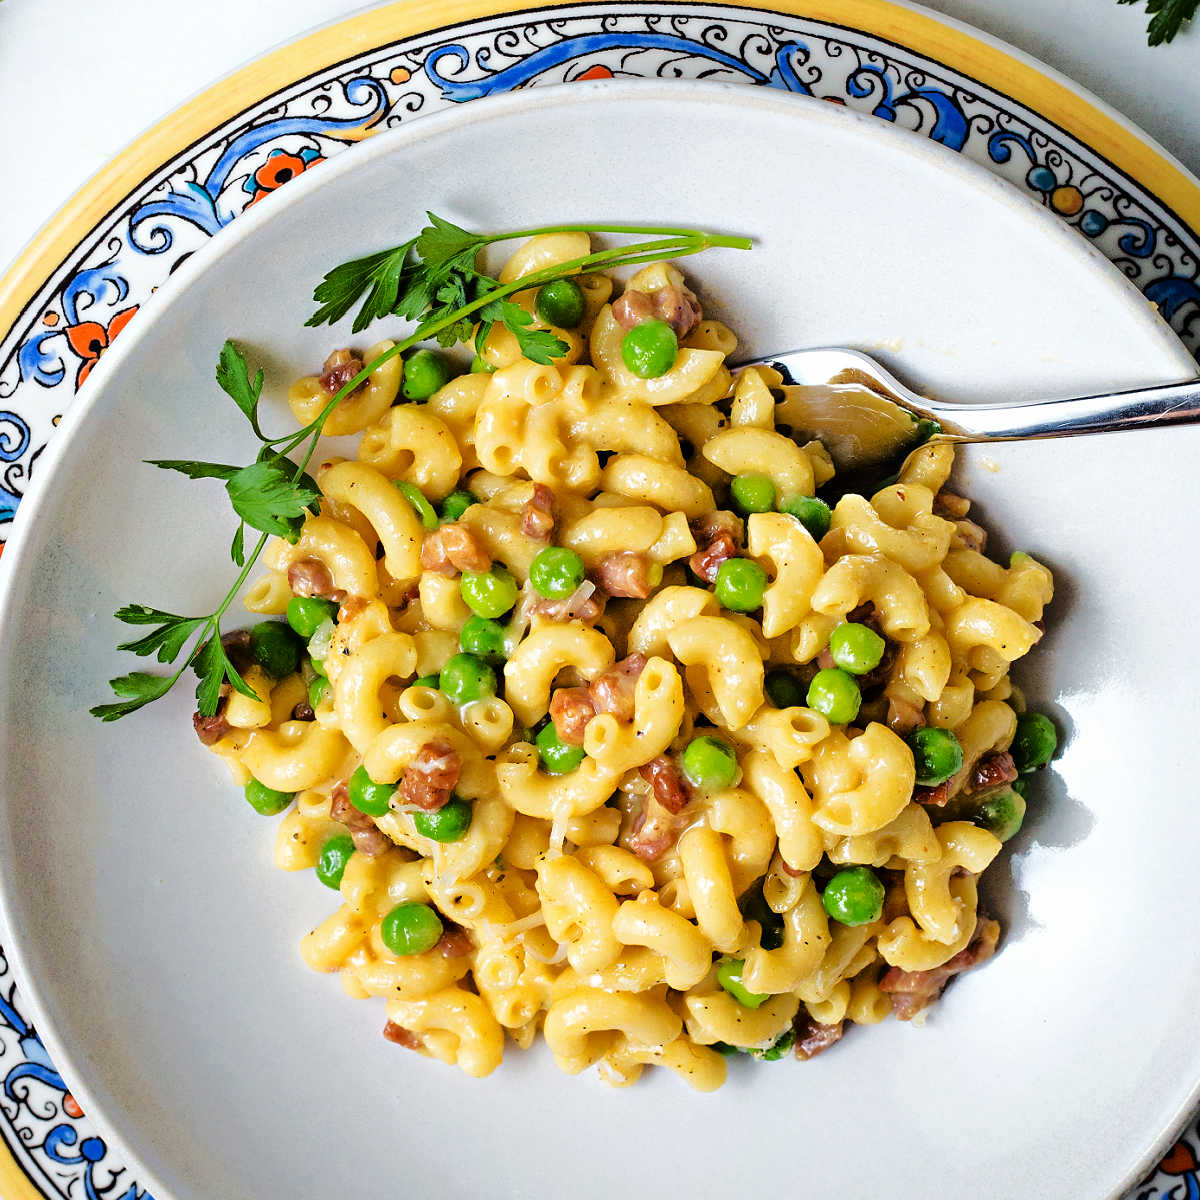 macaroni carbonara with prosciutto and green peas in a white bowl with a parsley garnish.